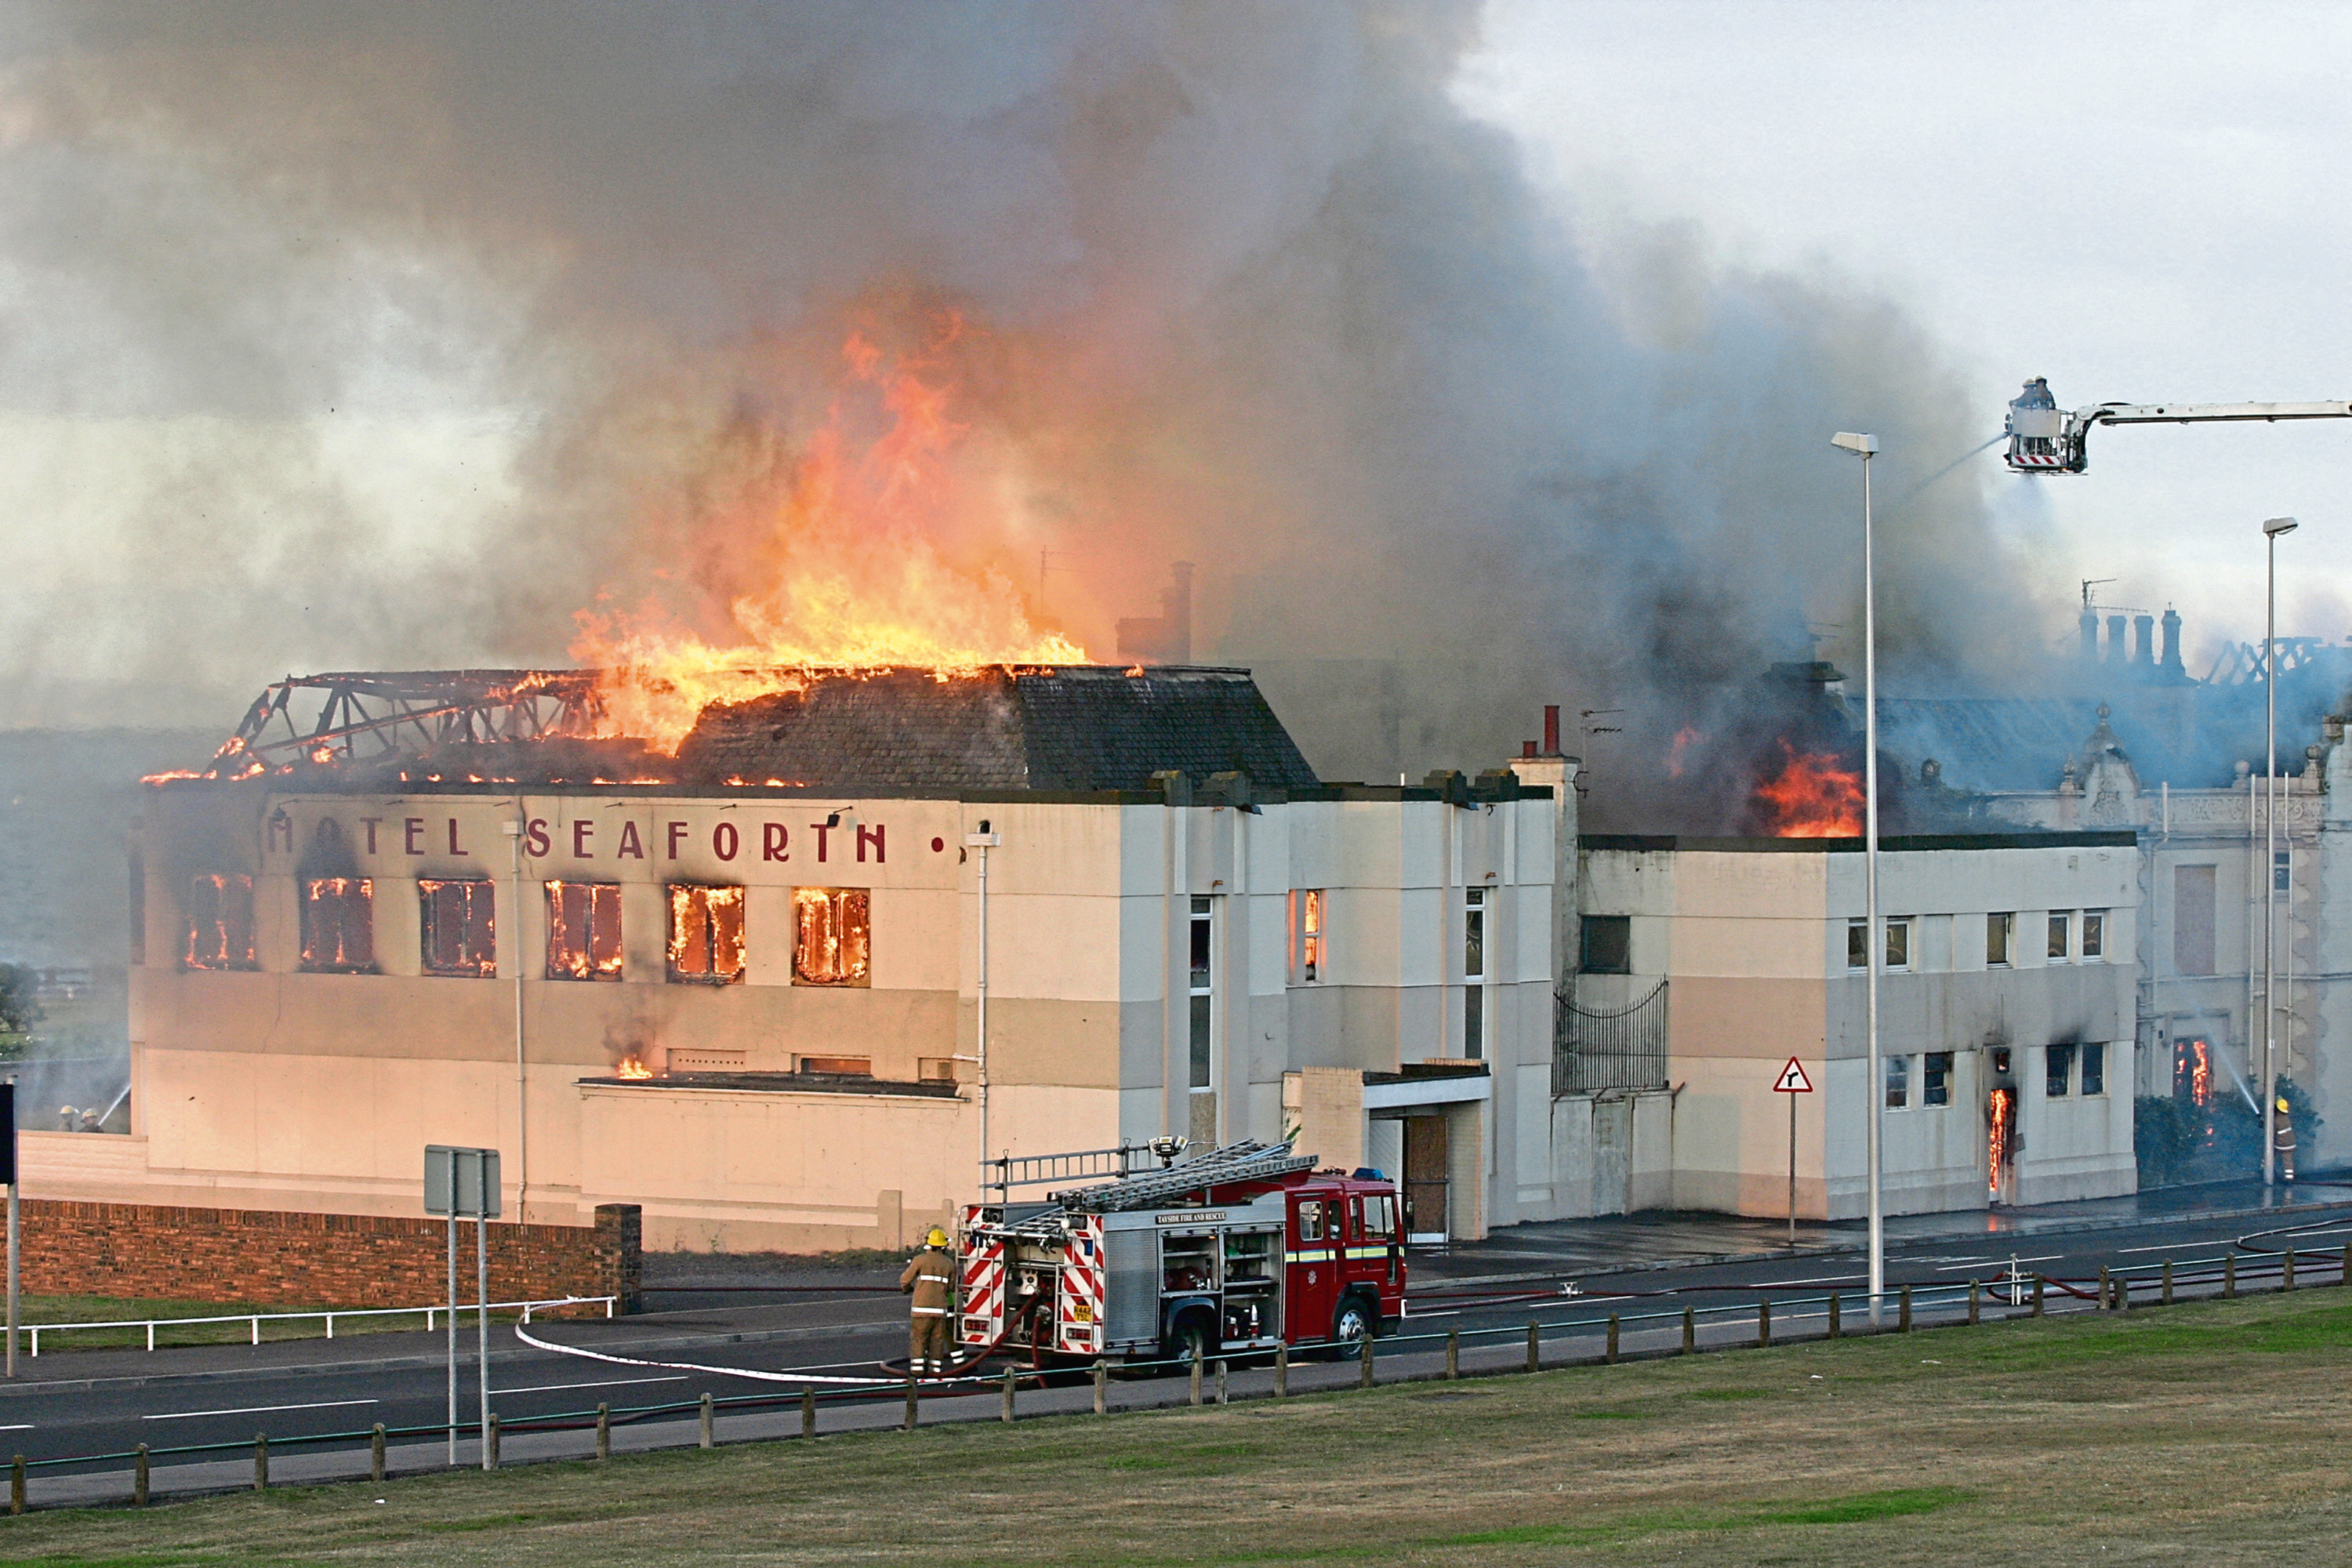 The fire-ravaged Seaforth Hotel in Arbroath in 2006